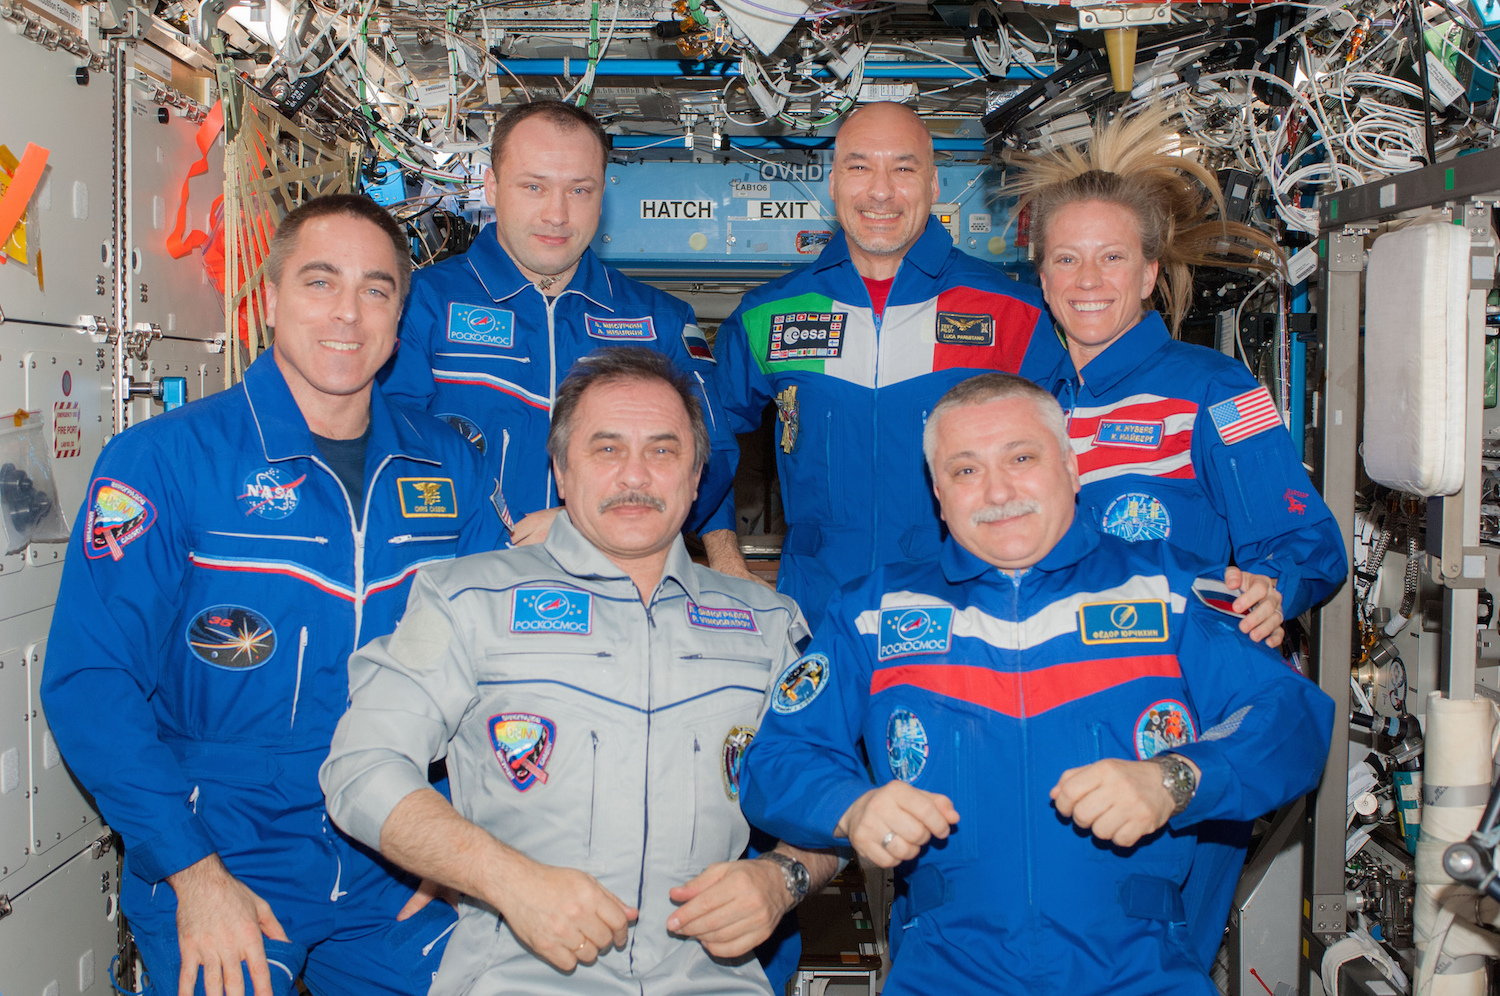 A different sort of family portrait. Astronauts Chris Cassidy, Pavel Vinogradov, Fyodor Yurchikhin, Alexander Misurkin, Luca Parmitano and Karen Nyberg are part of a community of scientists all working together to push the boundaries of exploration.   NASA Johnson/Flickr  (CC BY-NC 2.0)